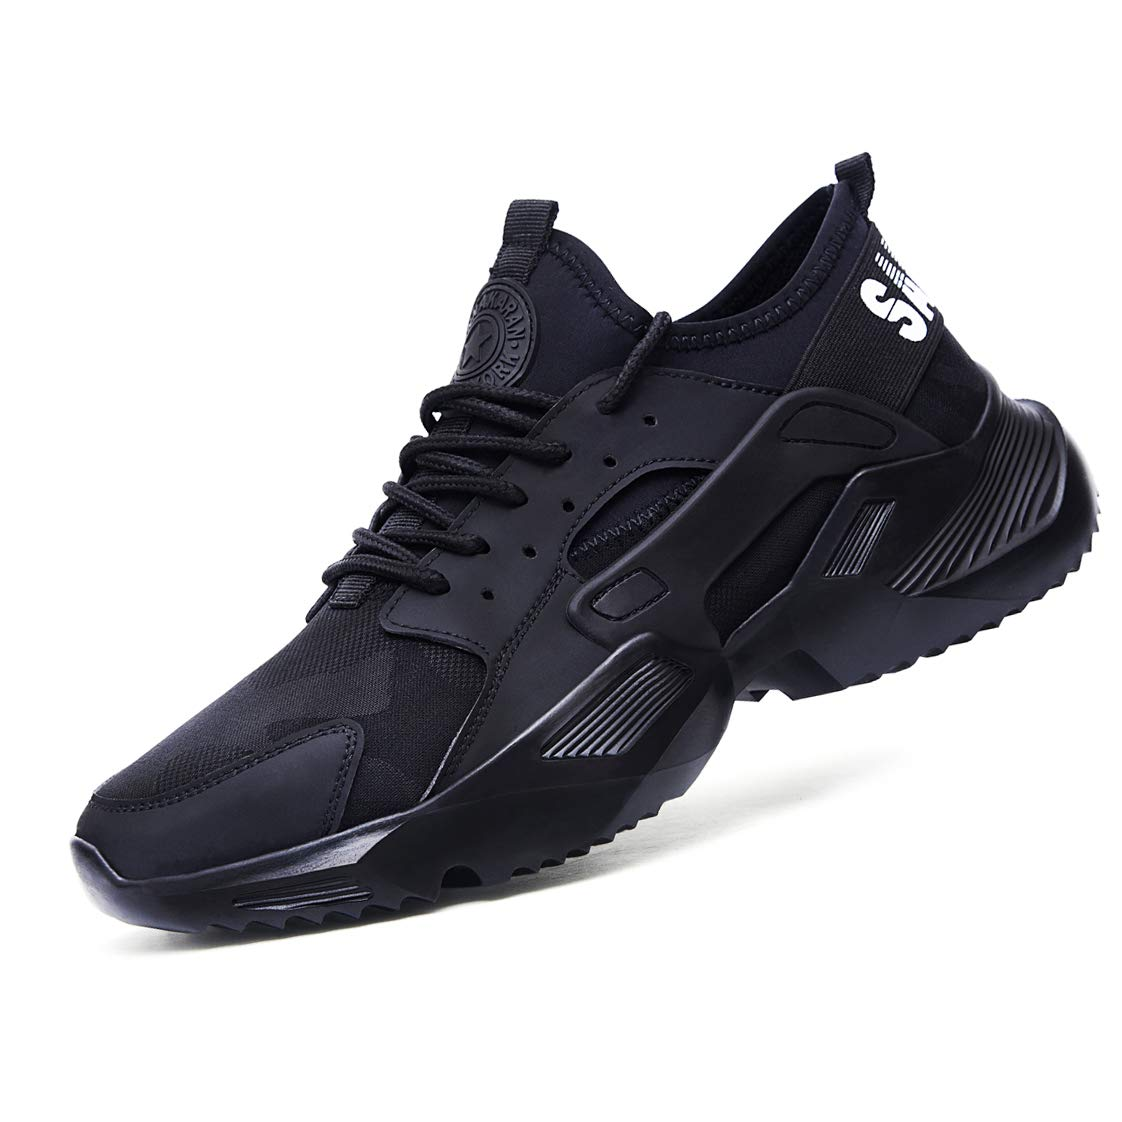 Lightweight Safety Shoes Men Women Breathable Anti Puncture Work Shoes S3 Steel Toe Protective Sneakers Sport Safety Trainers